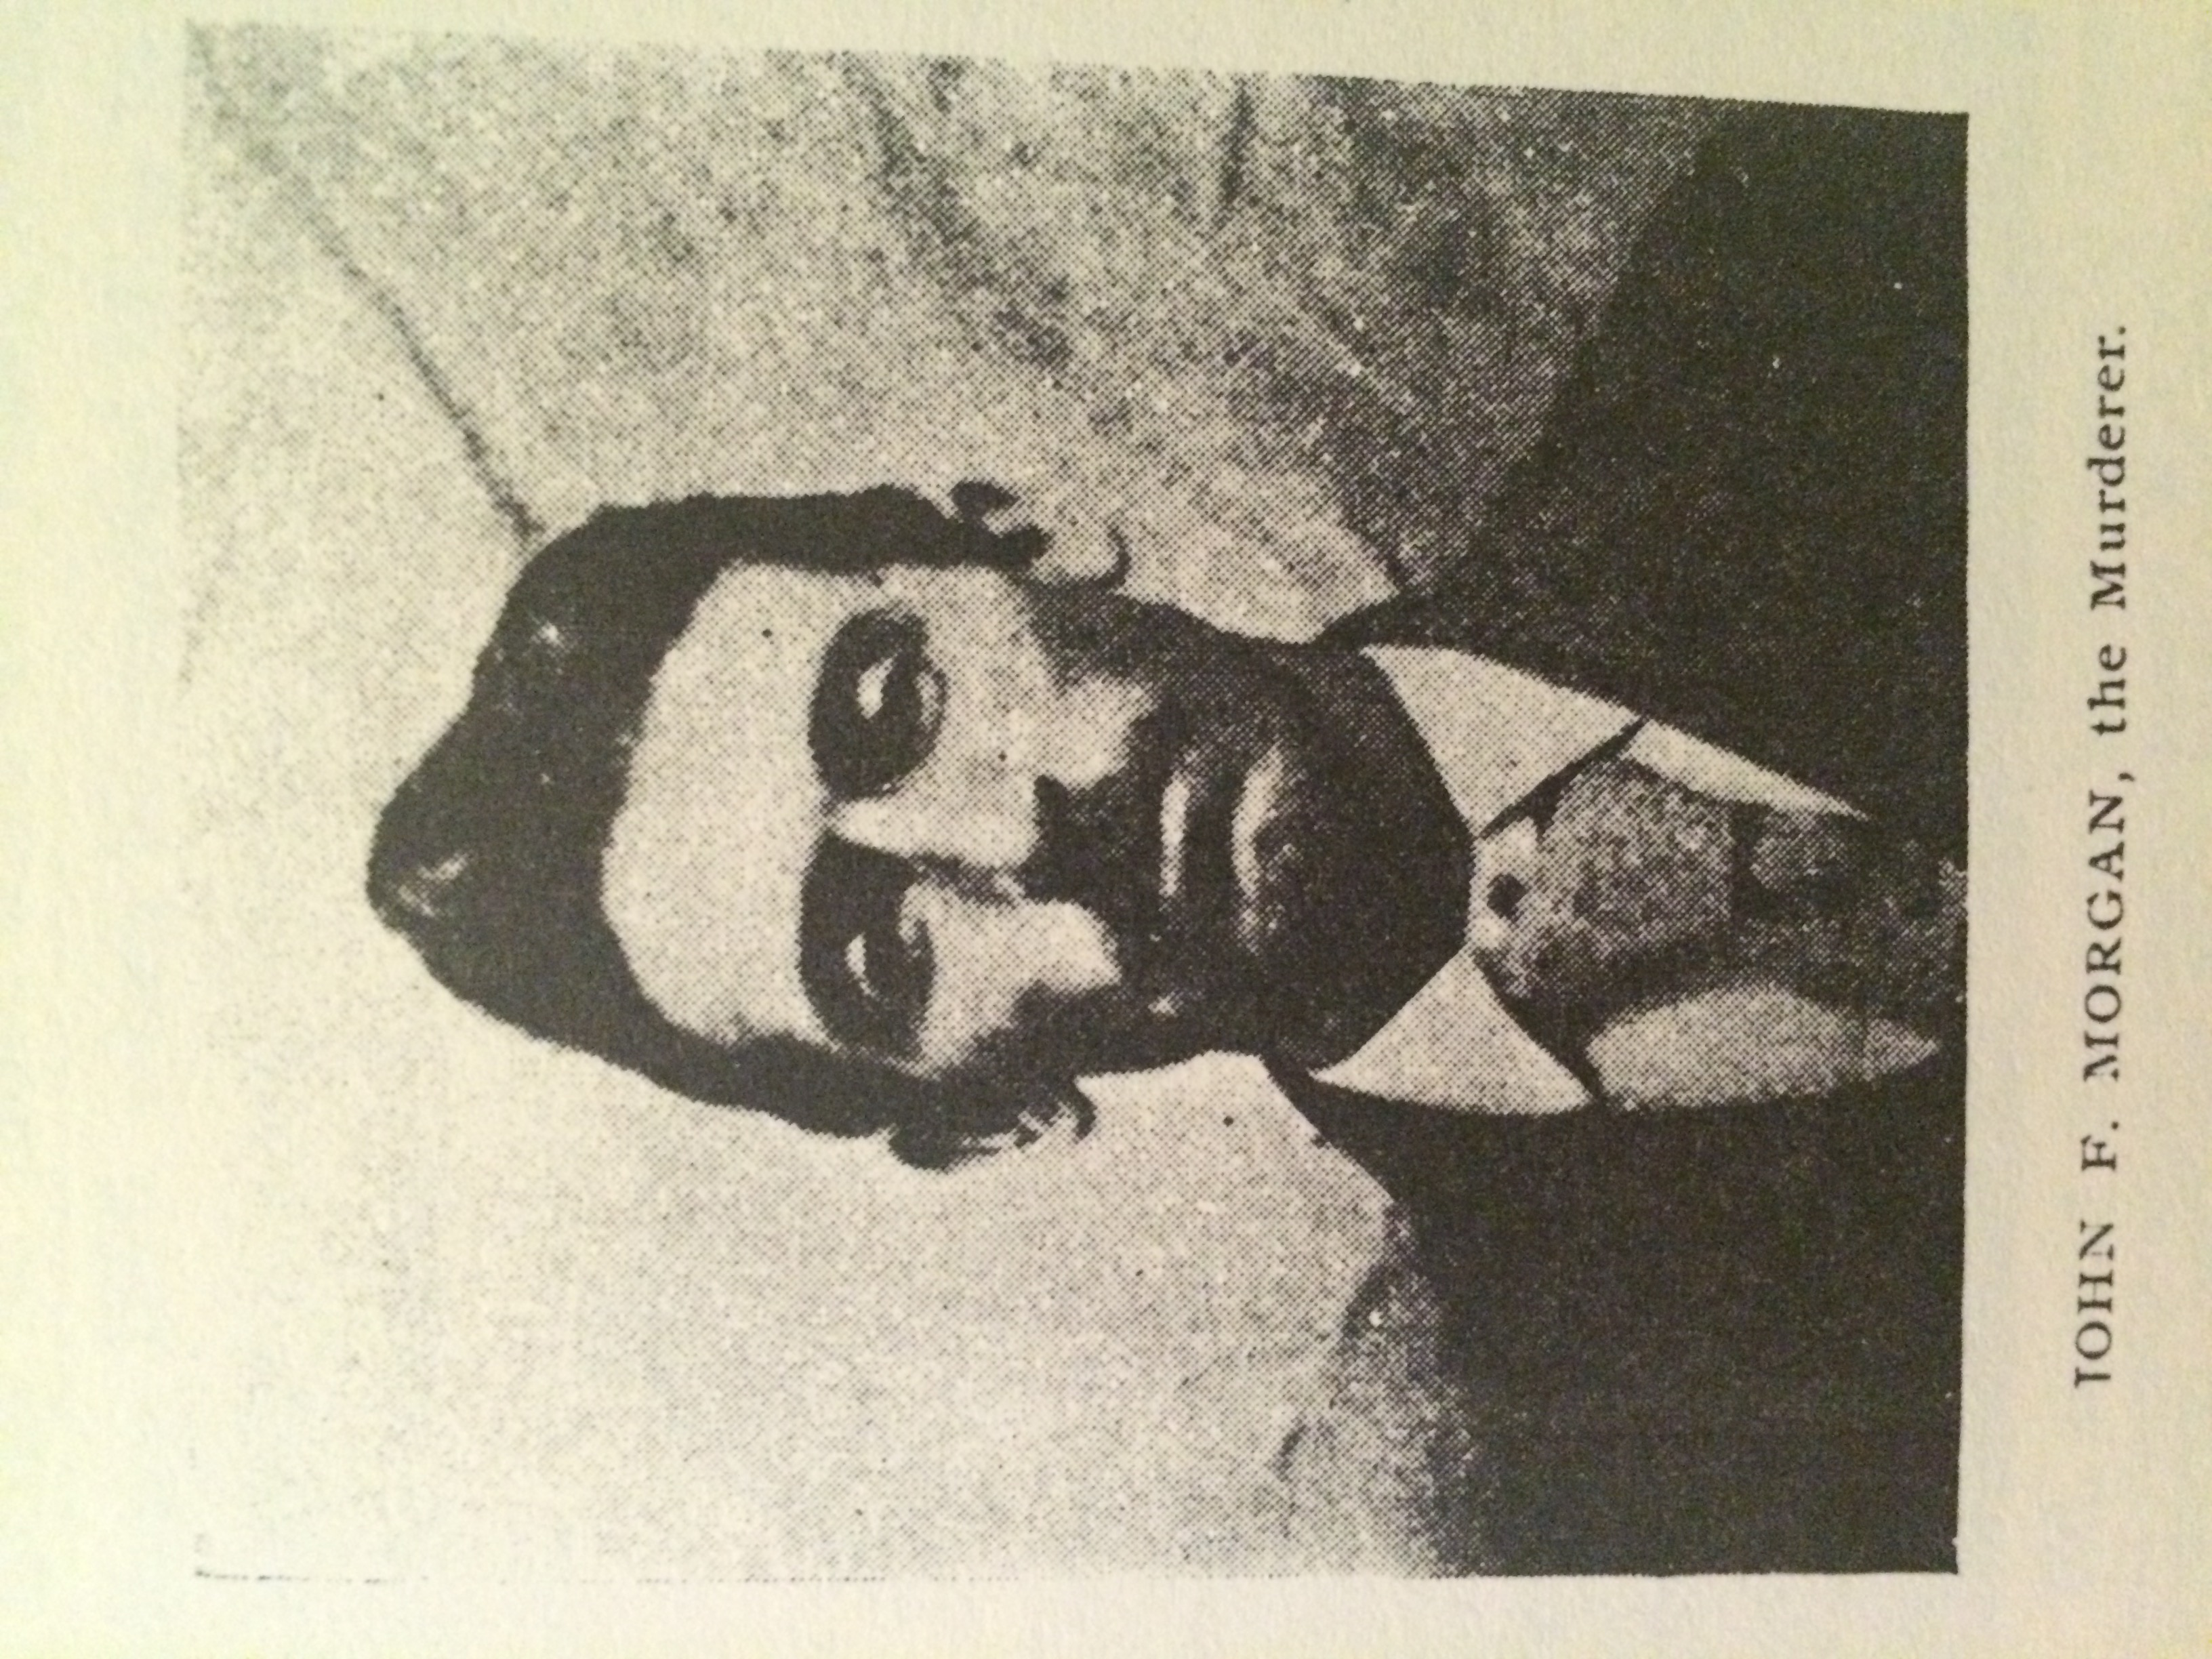 Image of John F. Morgan taken from Morrison's pamphlet